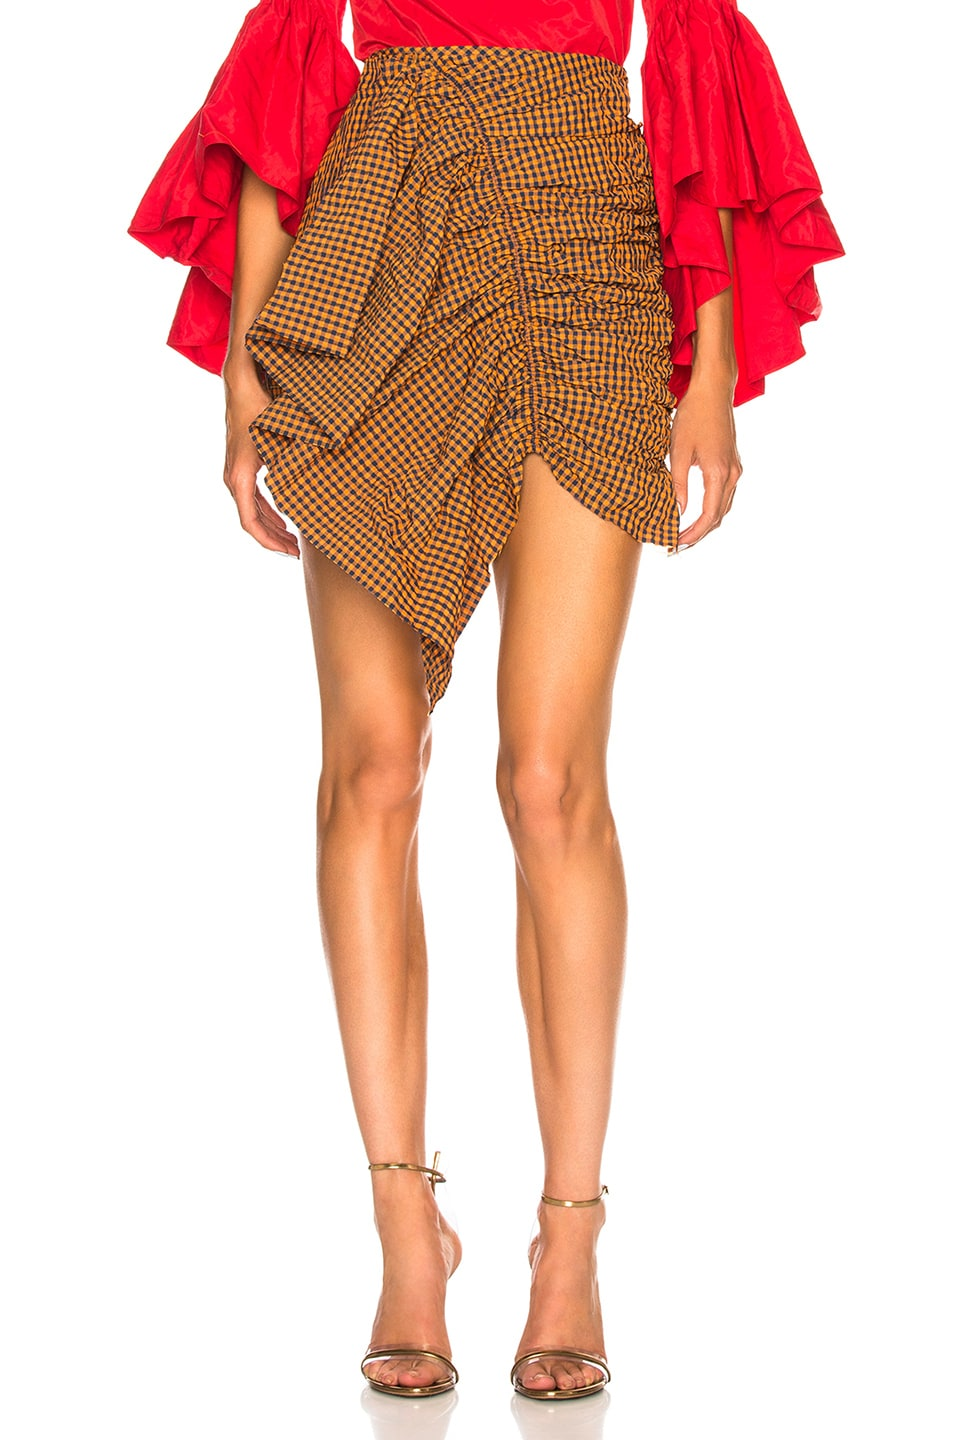 dd5822c738 Image 1 of Marques ' Almeida Gathered Front Skirt in Orange Gingham